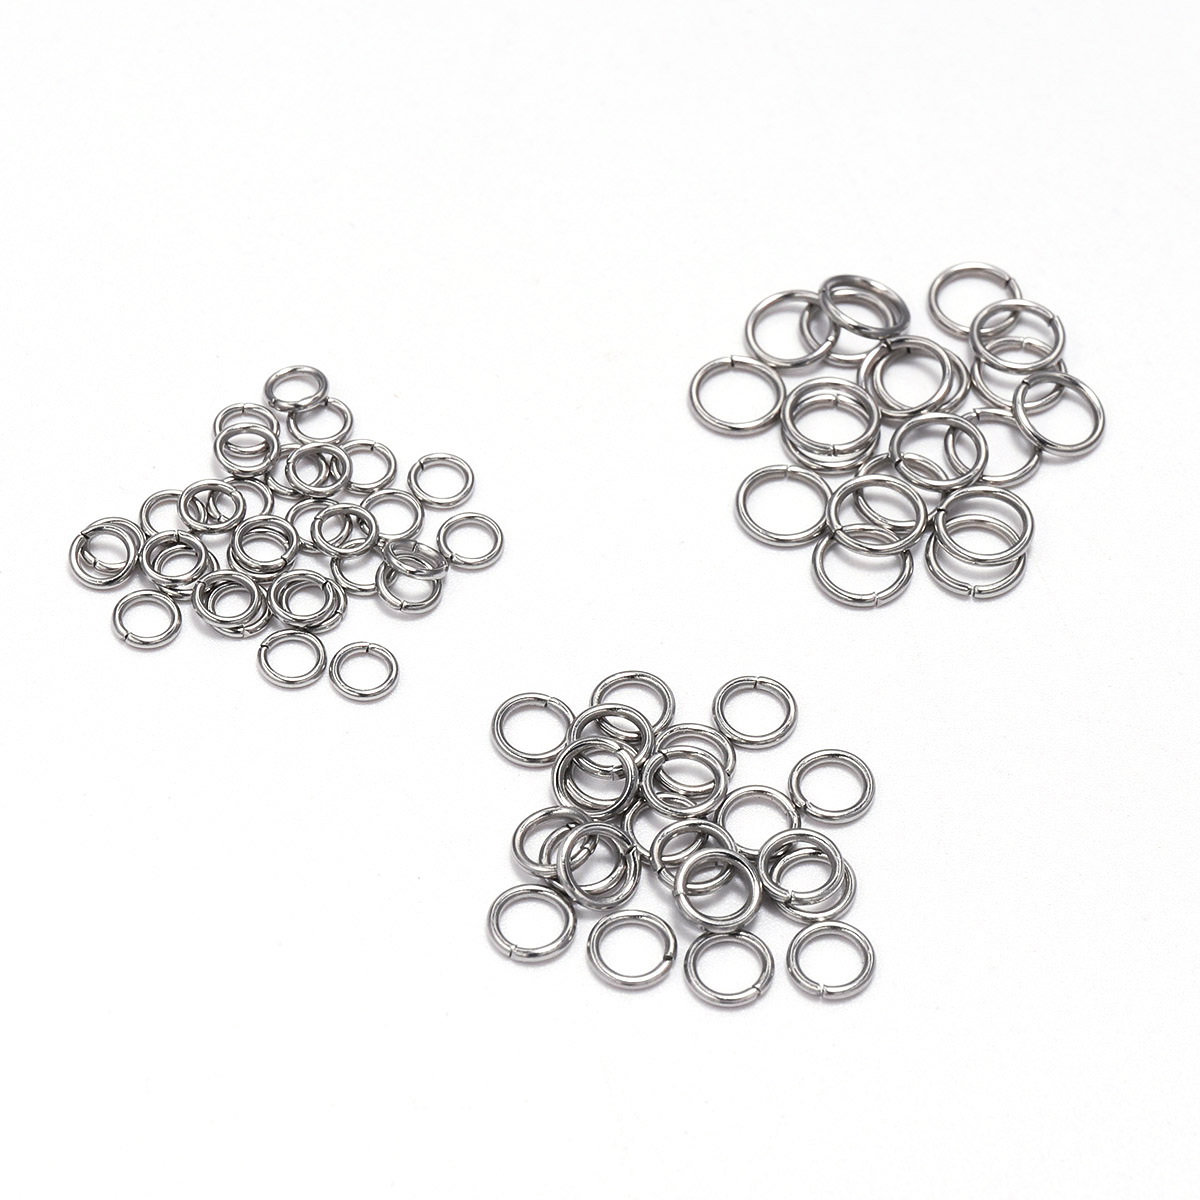 200pcs/Lot 4 5 6 8 10mm Stainless Steel Open Jump Rings Split Rings Connector For Jewelry Making Findings Accessories Supplies